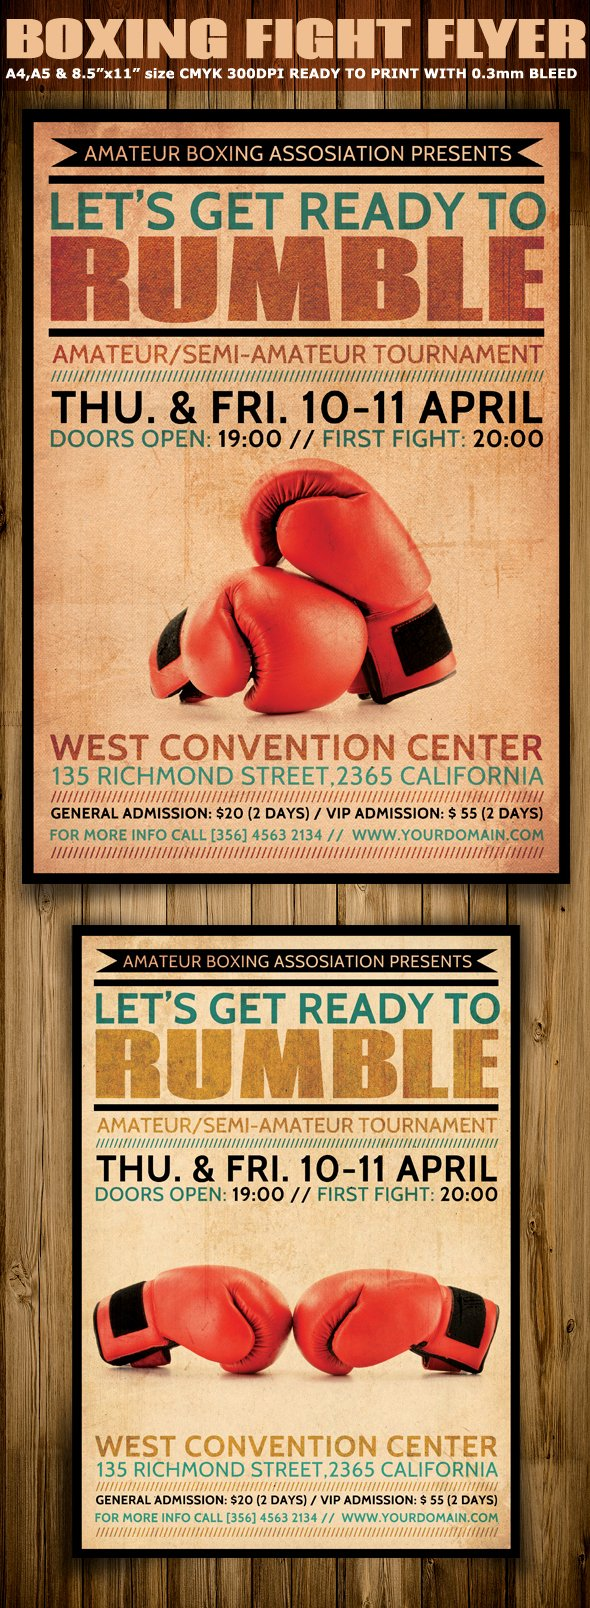 Promotion Flyer Template Free Beautiful Boxing Flyer Template